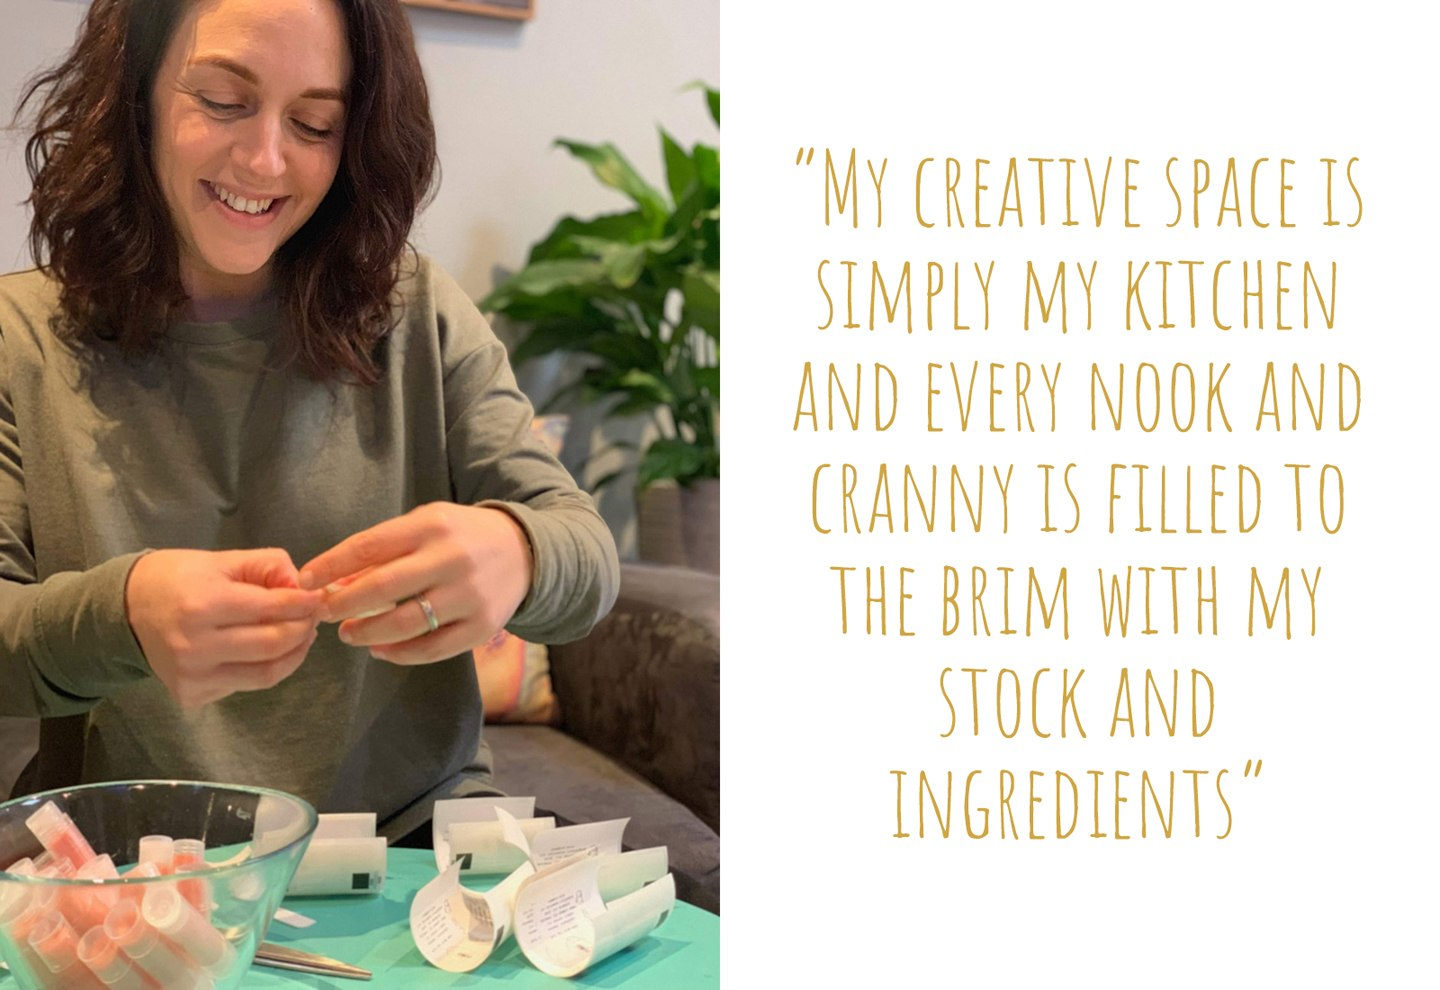 Melissa at work on her products; 'My creative space is simply my kitchen and every nook and cranny is filled to the brim with my stock and ingredients'